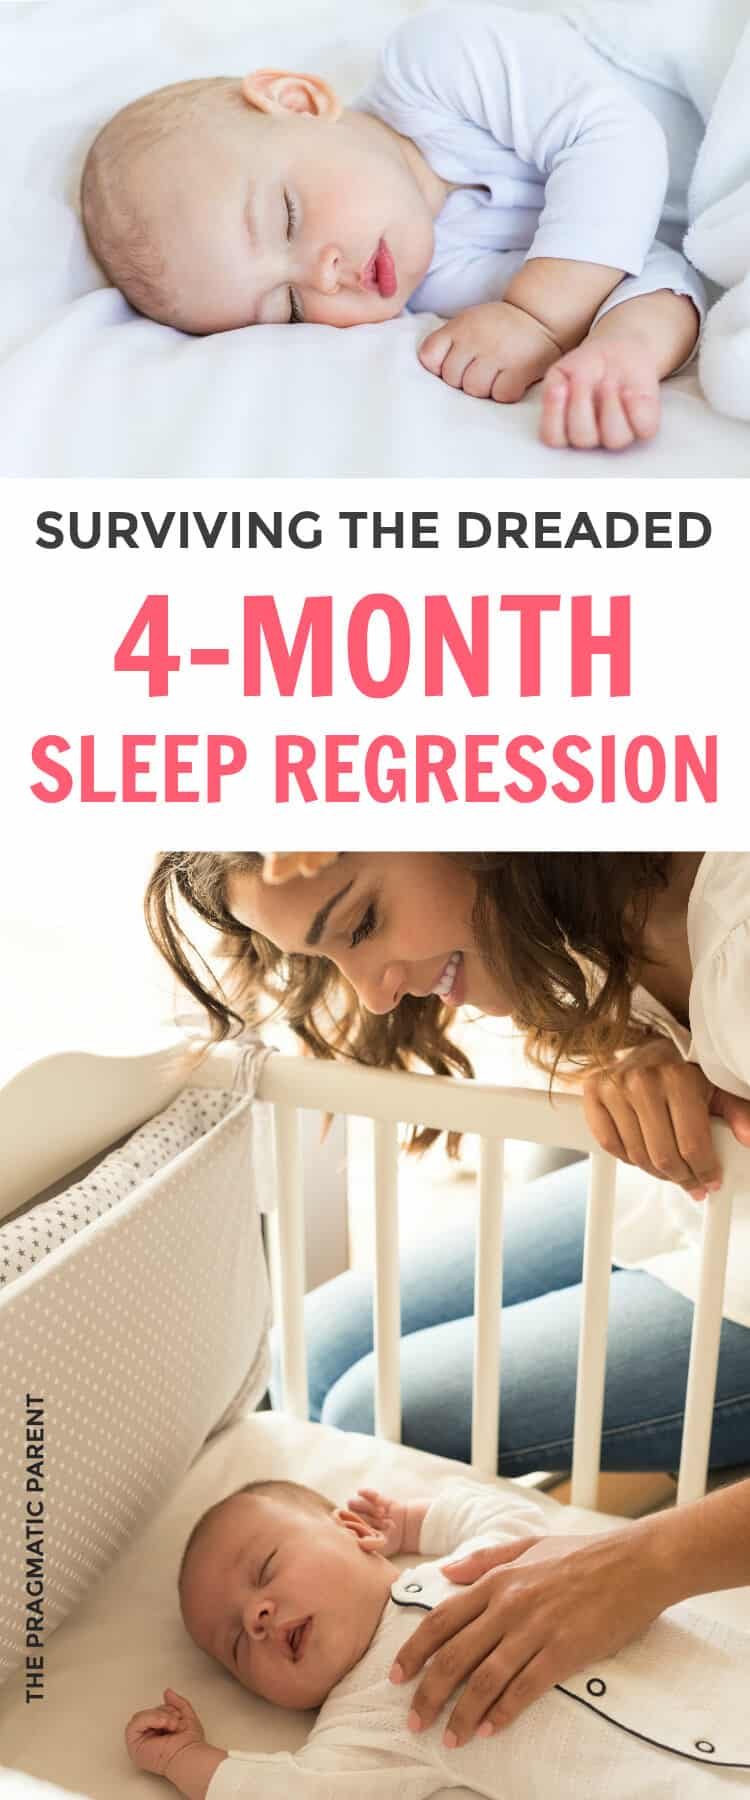 The 4 Month Sleep Regression is the first massive sleep struggle most babies will go through. Learn how to help your baby through the 4 month sleep regression, but also give her the tools to be a good sleeper and teach her how to fall asleep on her own. Overcome the 4 month sleep regression.